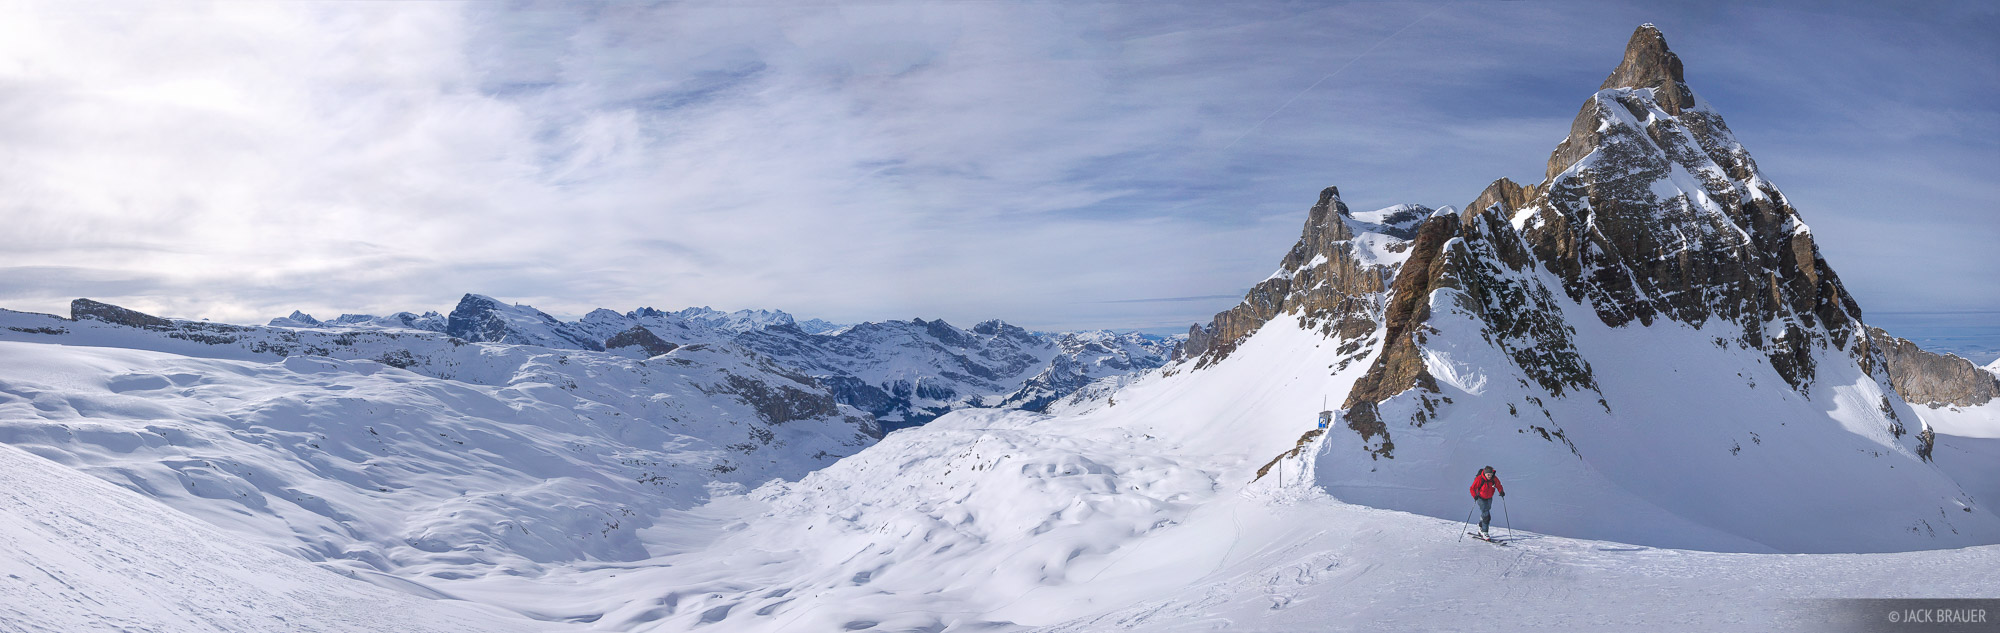 Hasenstock, Griessental, skiing, Switzerland, Engelberg, panorama, photo